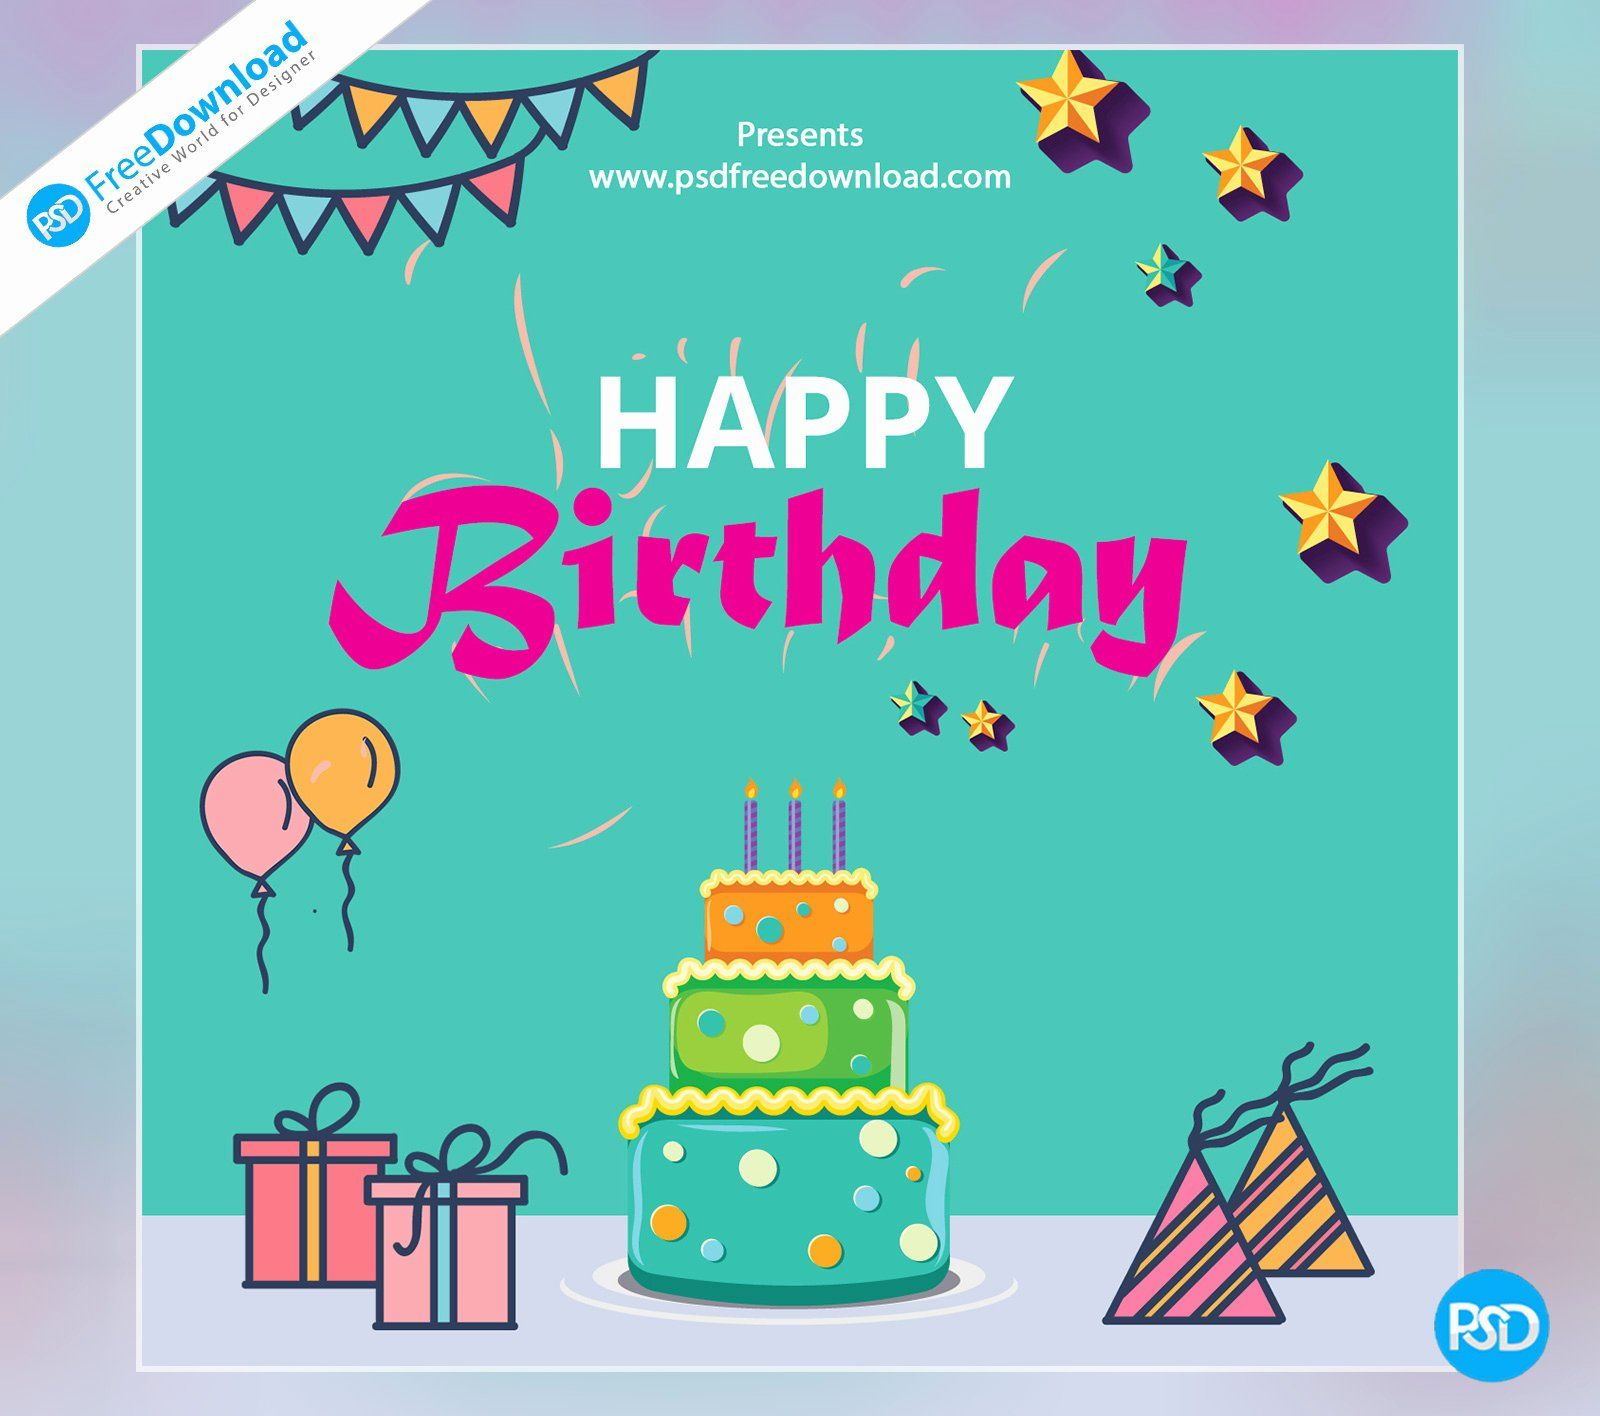 Birthday Card Free Template Fresh Happy Birthday Template Greeting Card Psd Free Downloa Birthday Card Template Free Unique Birthday Cards Happy Birthday Cards